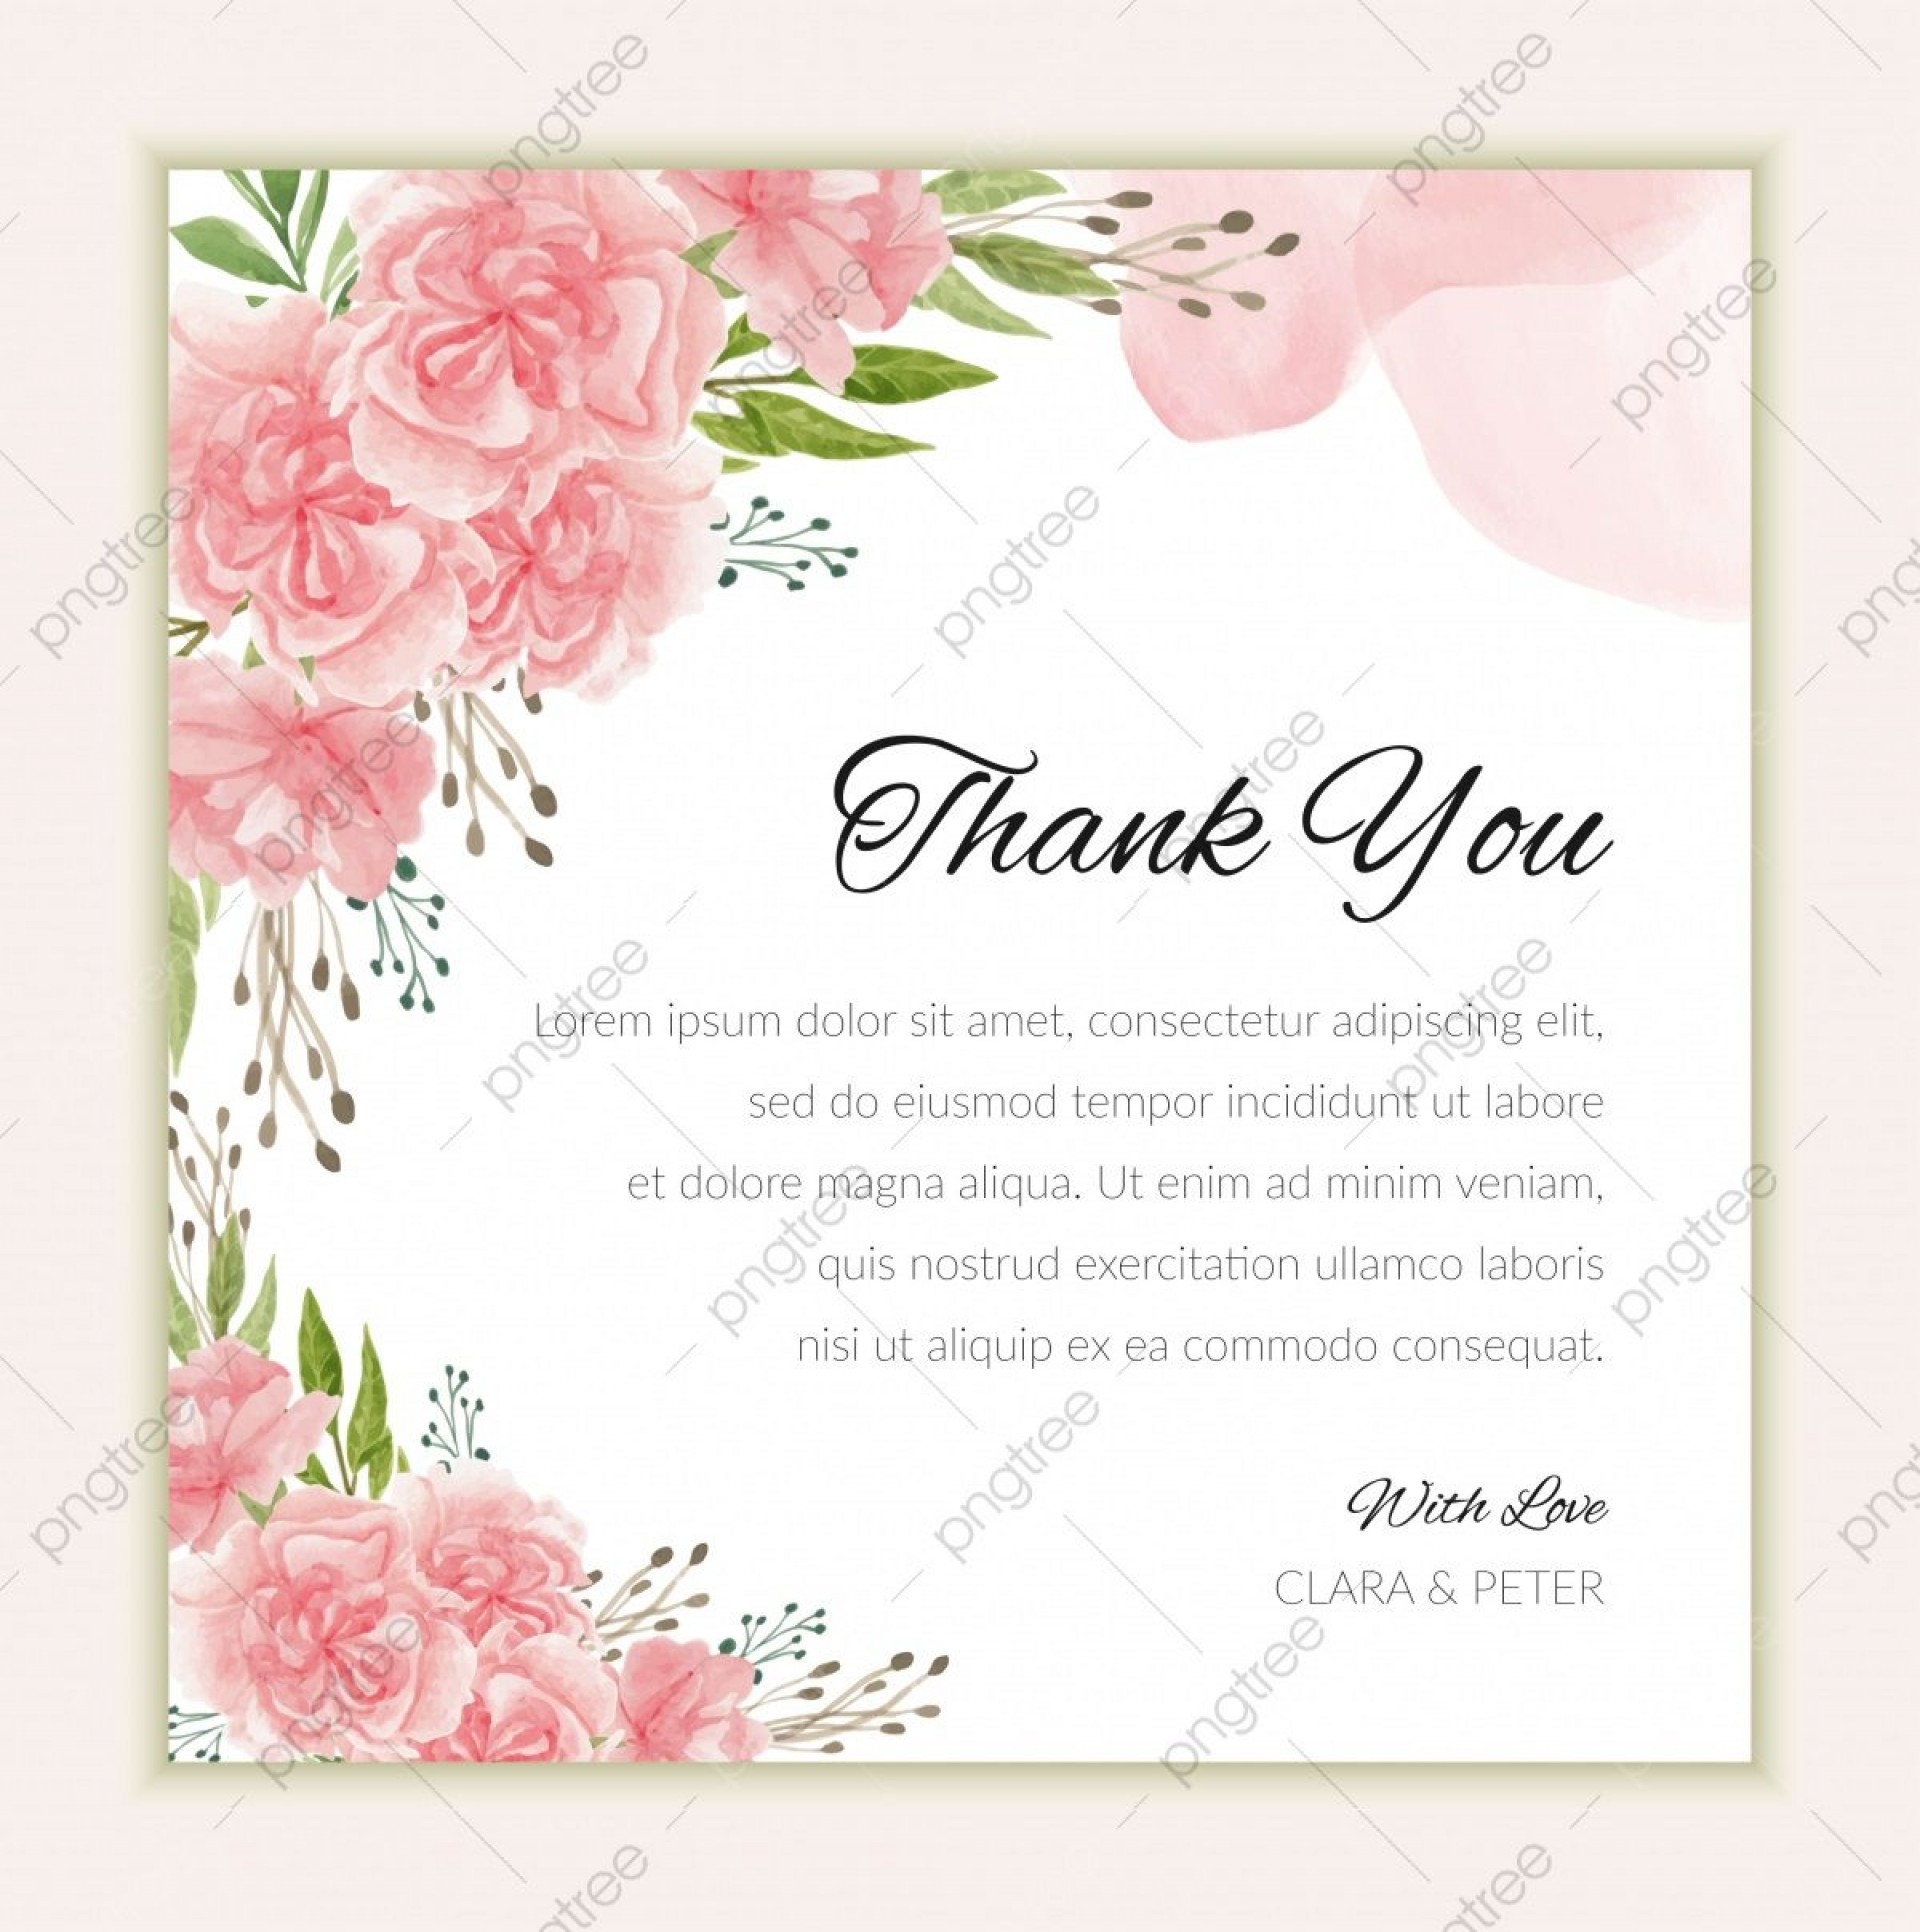 005 Exceptional Thank You Card Template Idea  Wedding Busines Word Free1920